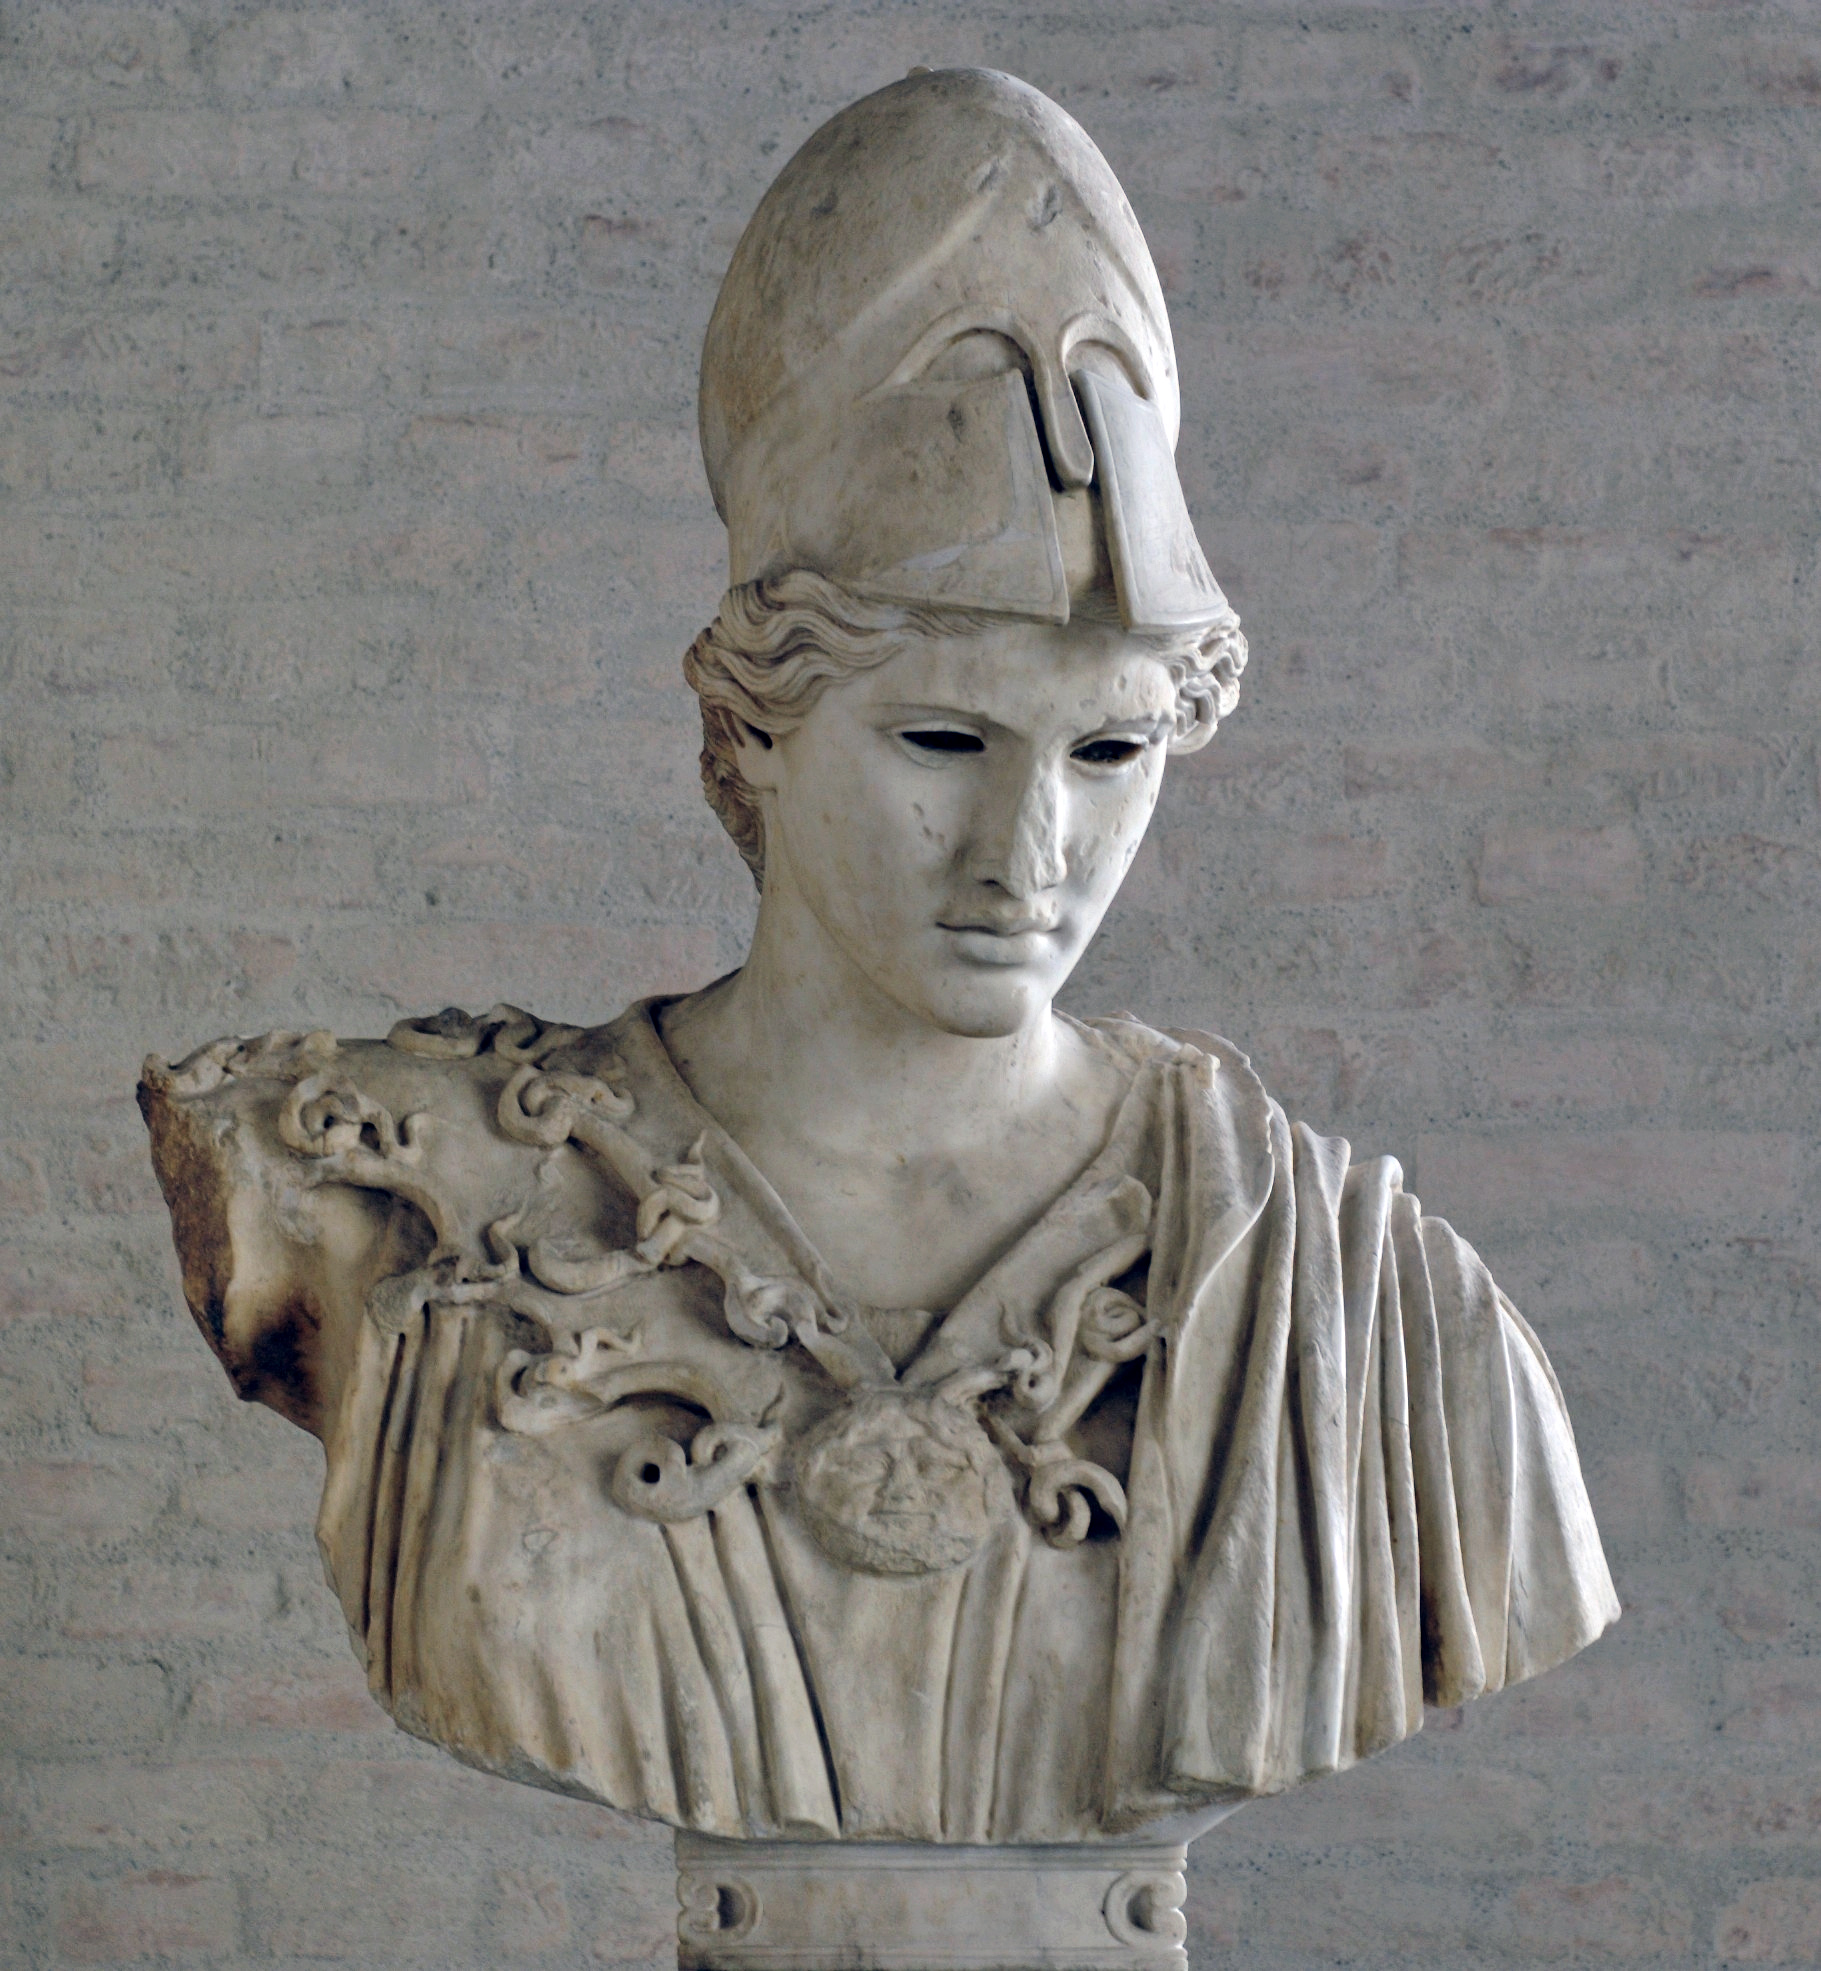 https://upload.wikimedia.org/wikipedia/commons/e/ea/Bust_Athena_Velletri_Glyptothek_Munich_213.jpg